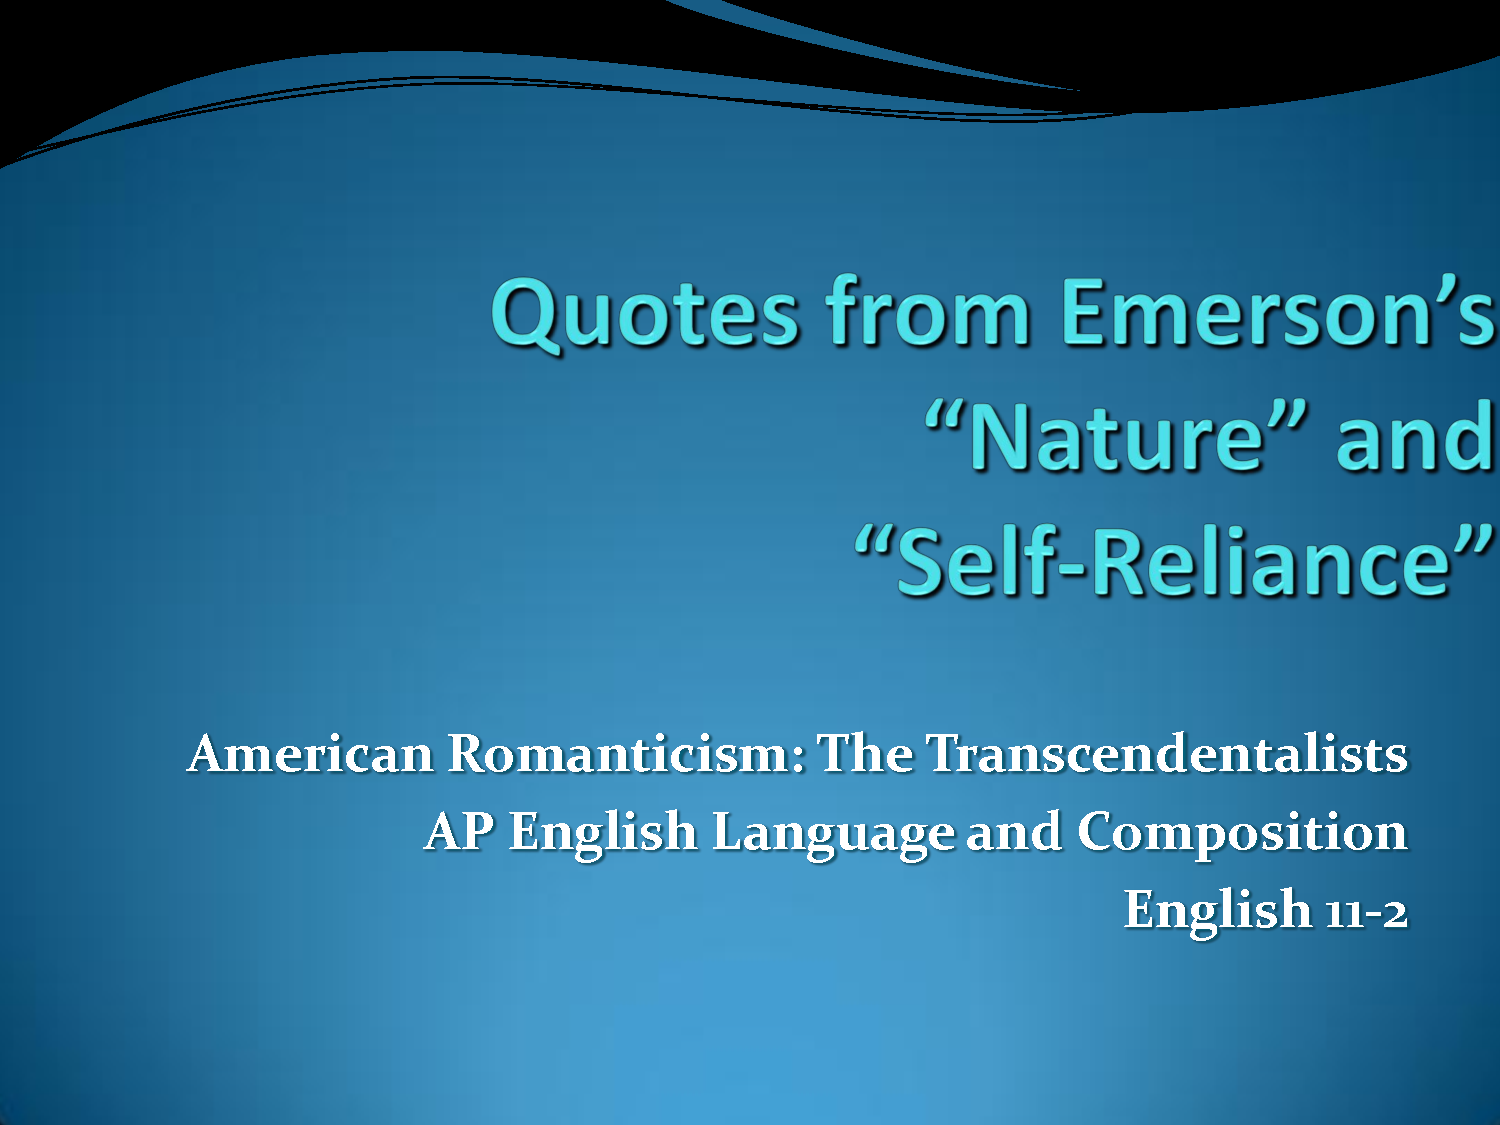 """essays on self reliance emerson Individualism in ralph waldo emerson's """"self-reliance"""" – a close reading guide from america in class 3 reliance"""" he proclaims """"now we are a mob."""